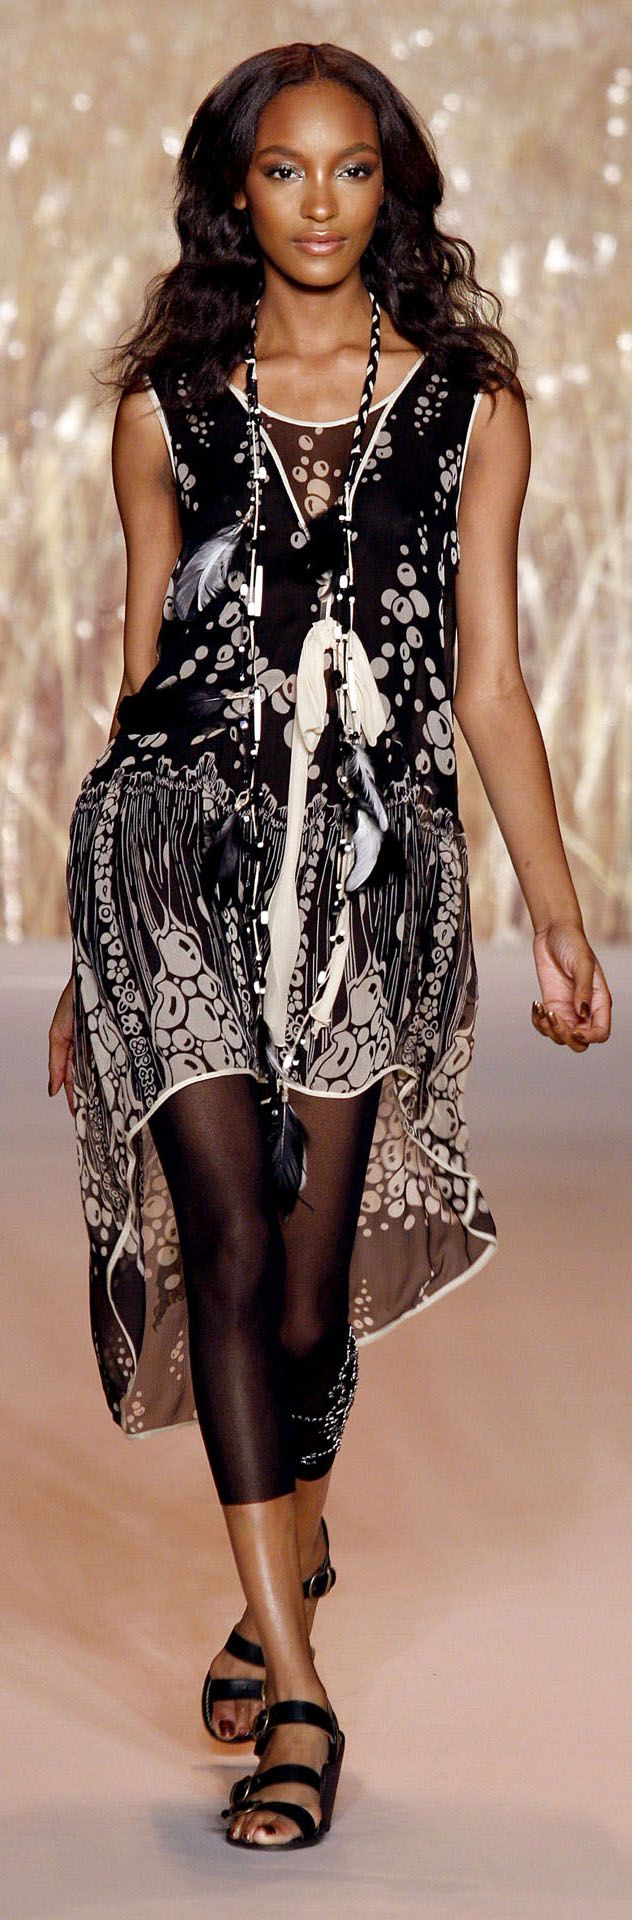 ✪ Native American Inspiration in Anna Sui Ready-To-Wear Spring/Summer 2011 ✪ http://www.vogue.co.uk/fashion/spring-summer-2011/ready-to-wear/anna-sui/full-length-photos# ★★ MORE on Native American Inspired